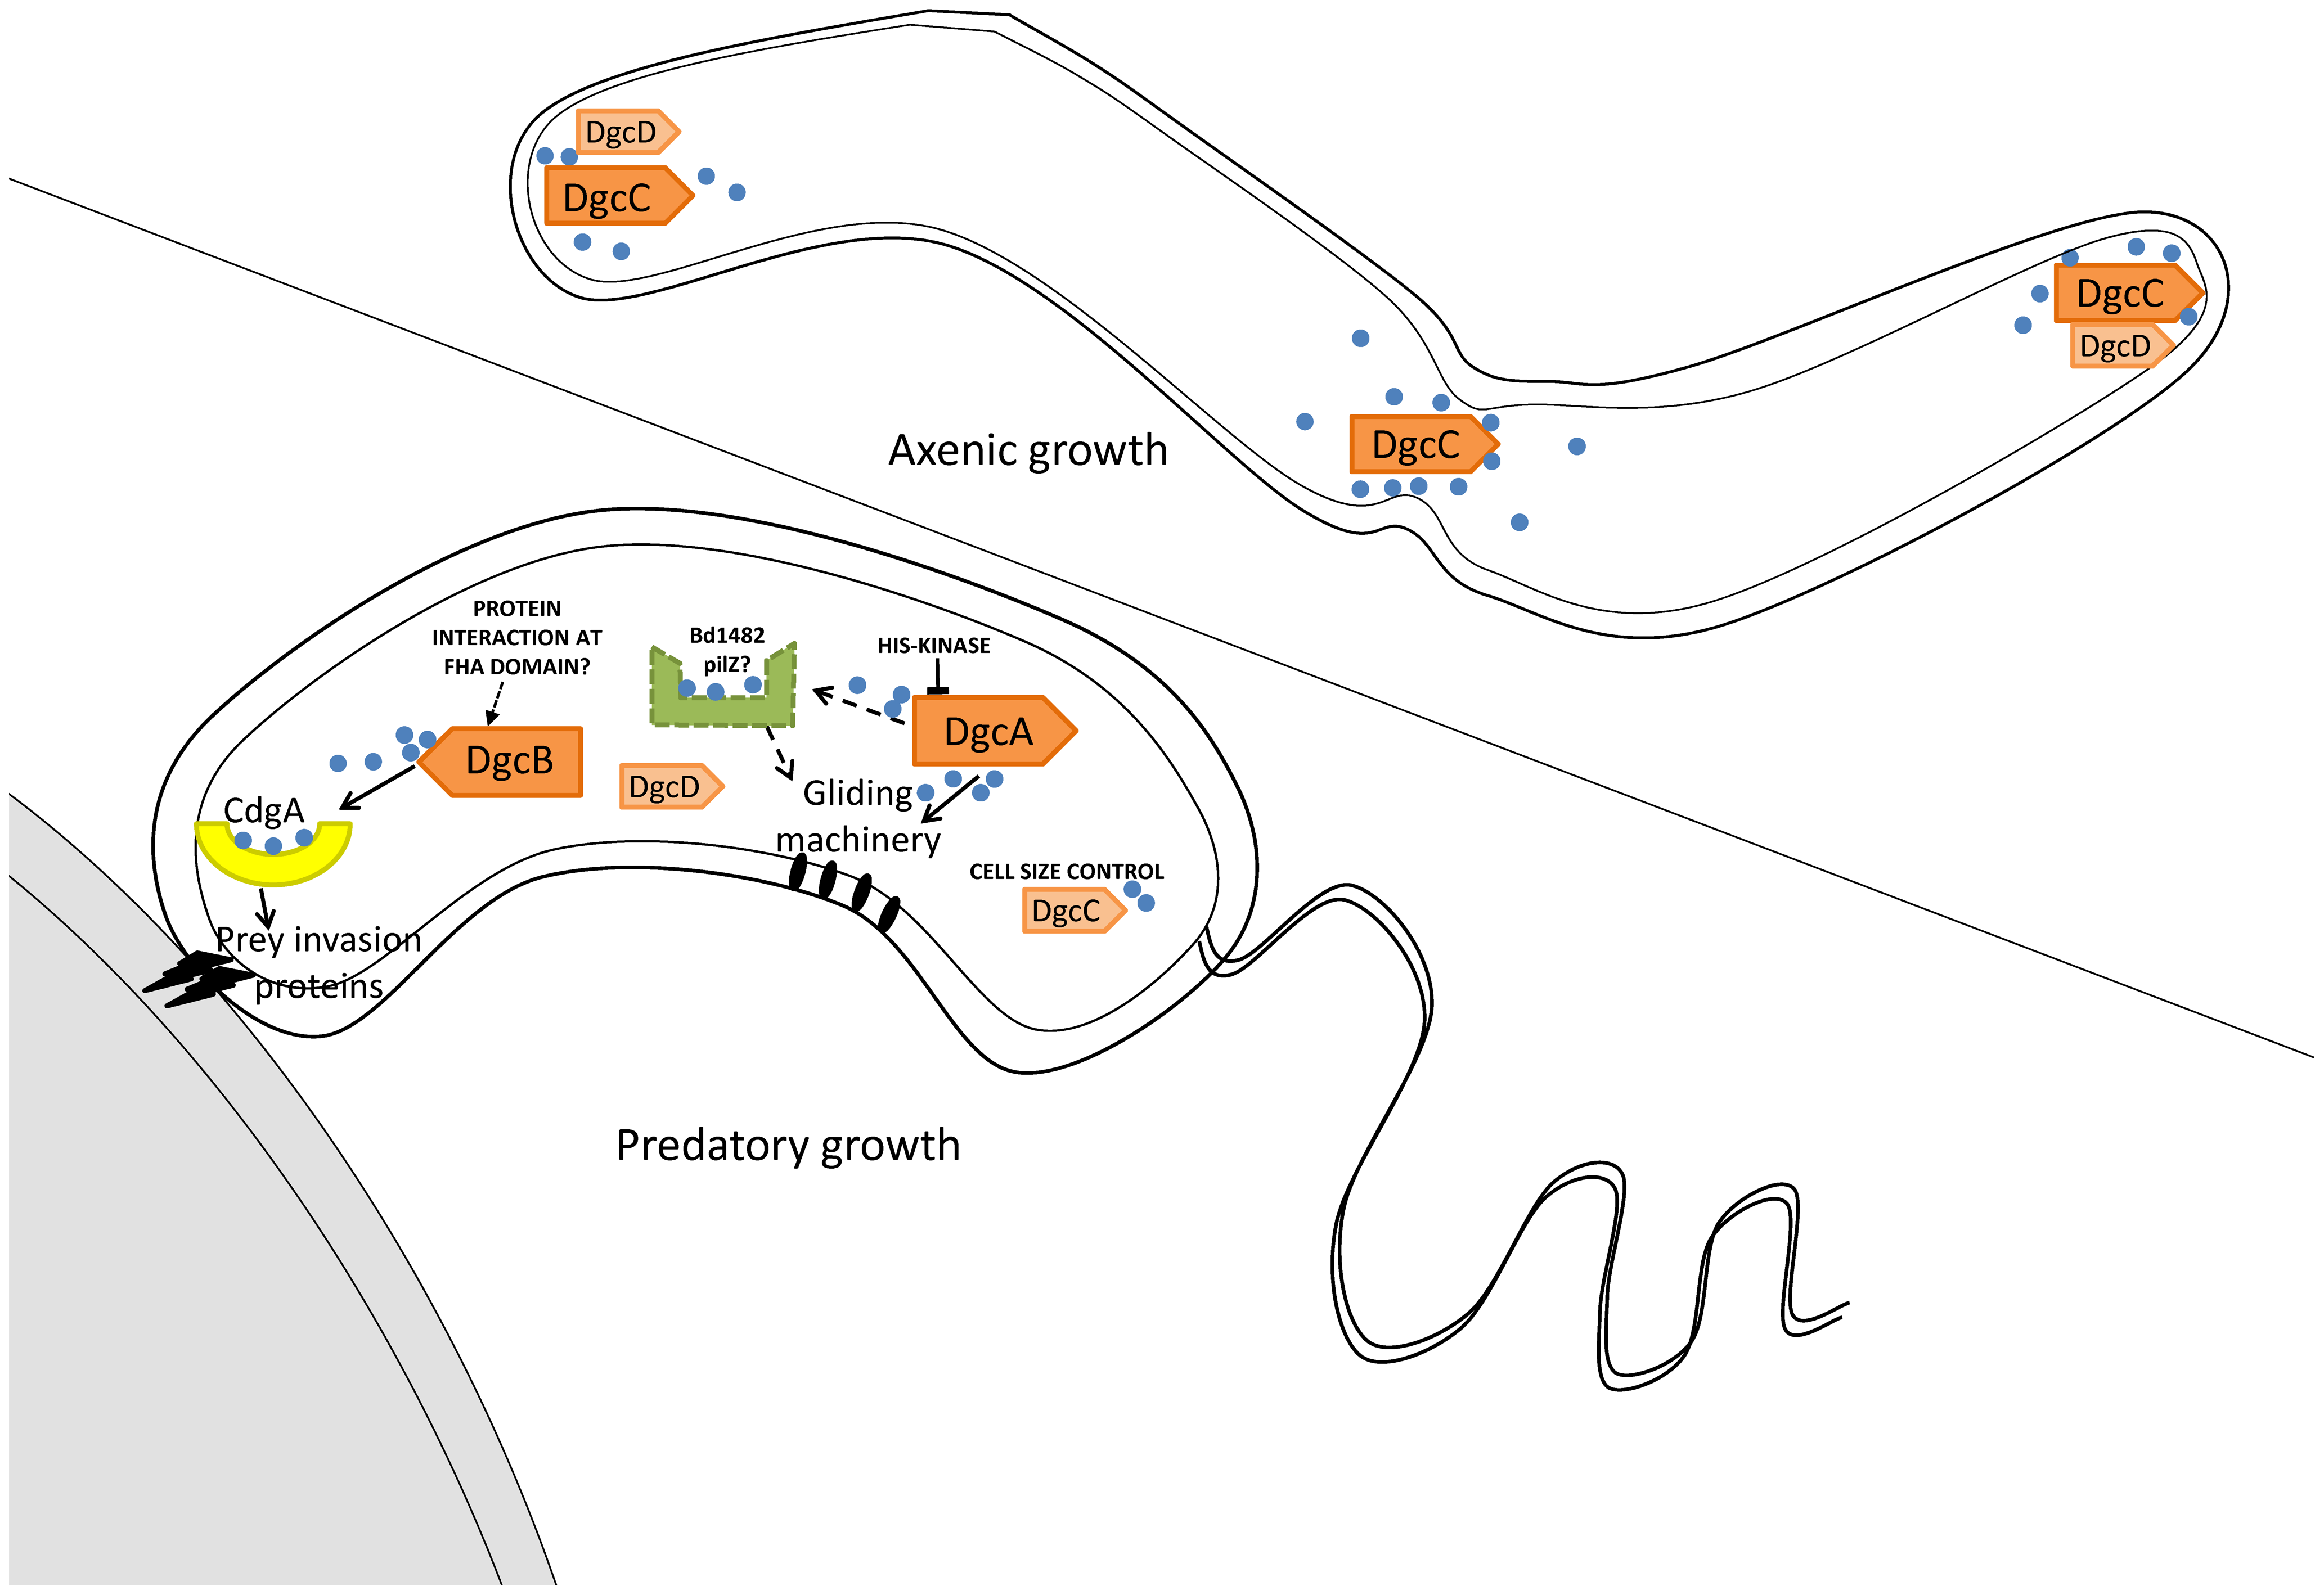 Summary of GGDEF domain protein activities in <i>B. bacteriovorus</i> HD100 lifestyles.